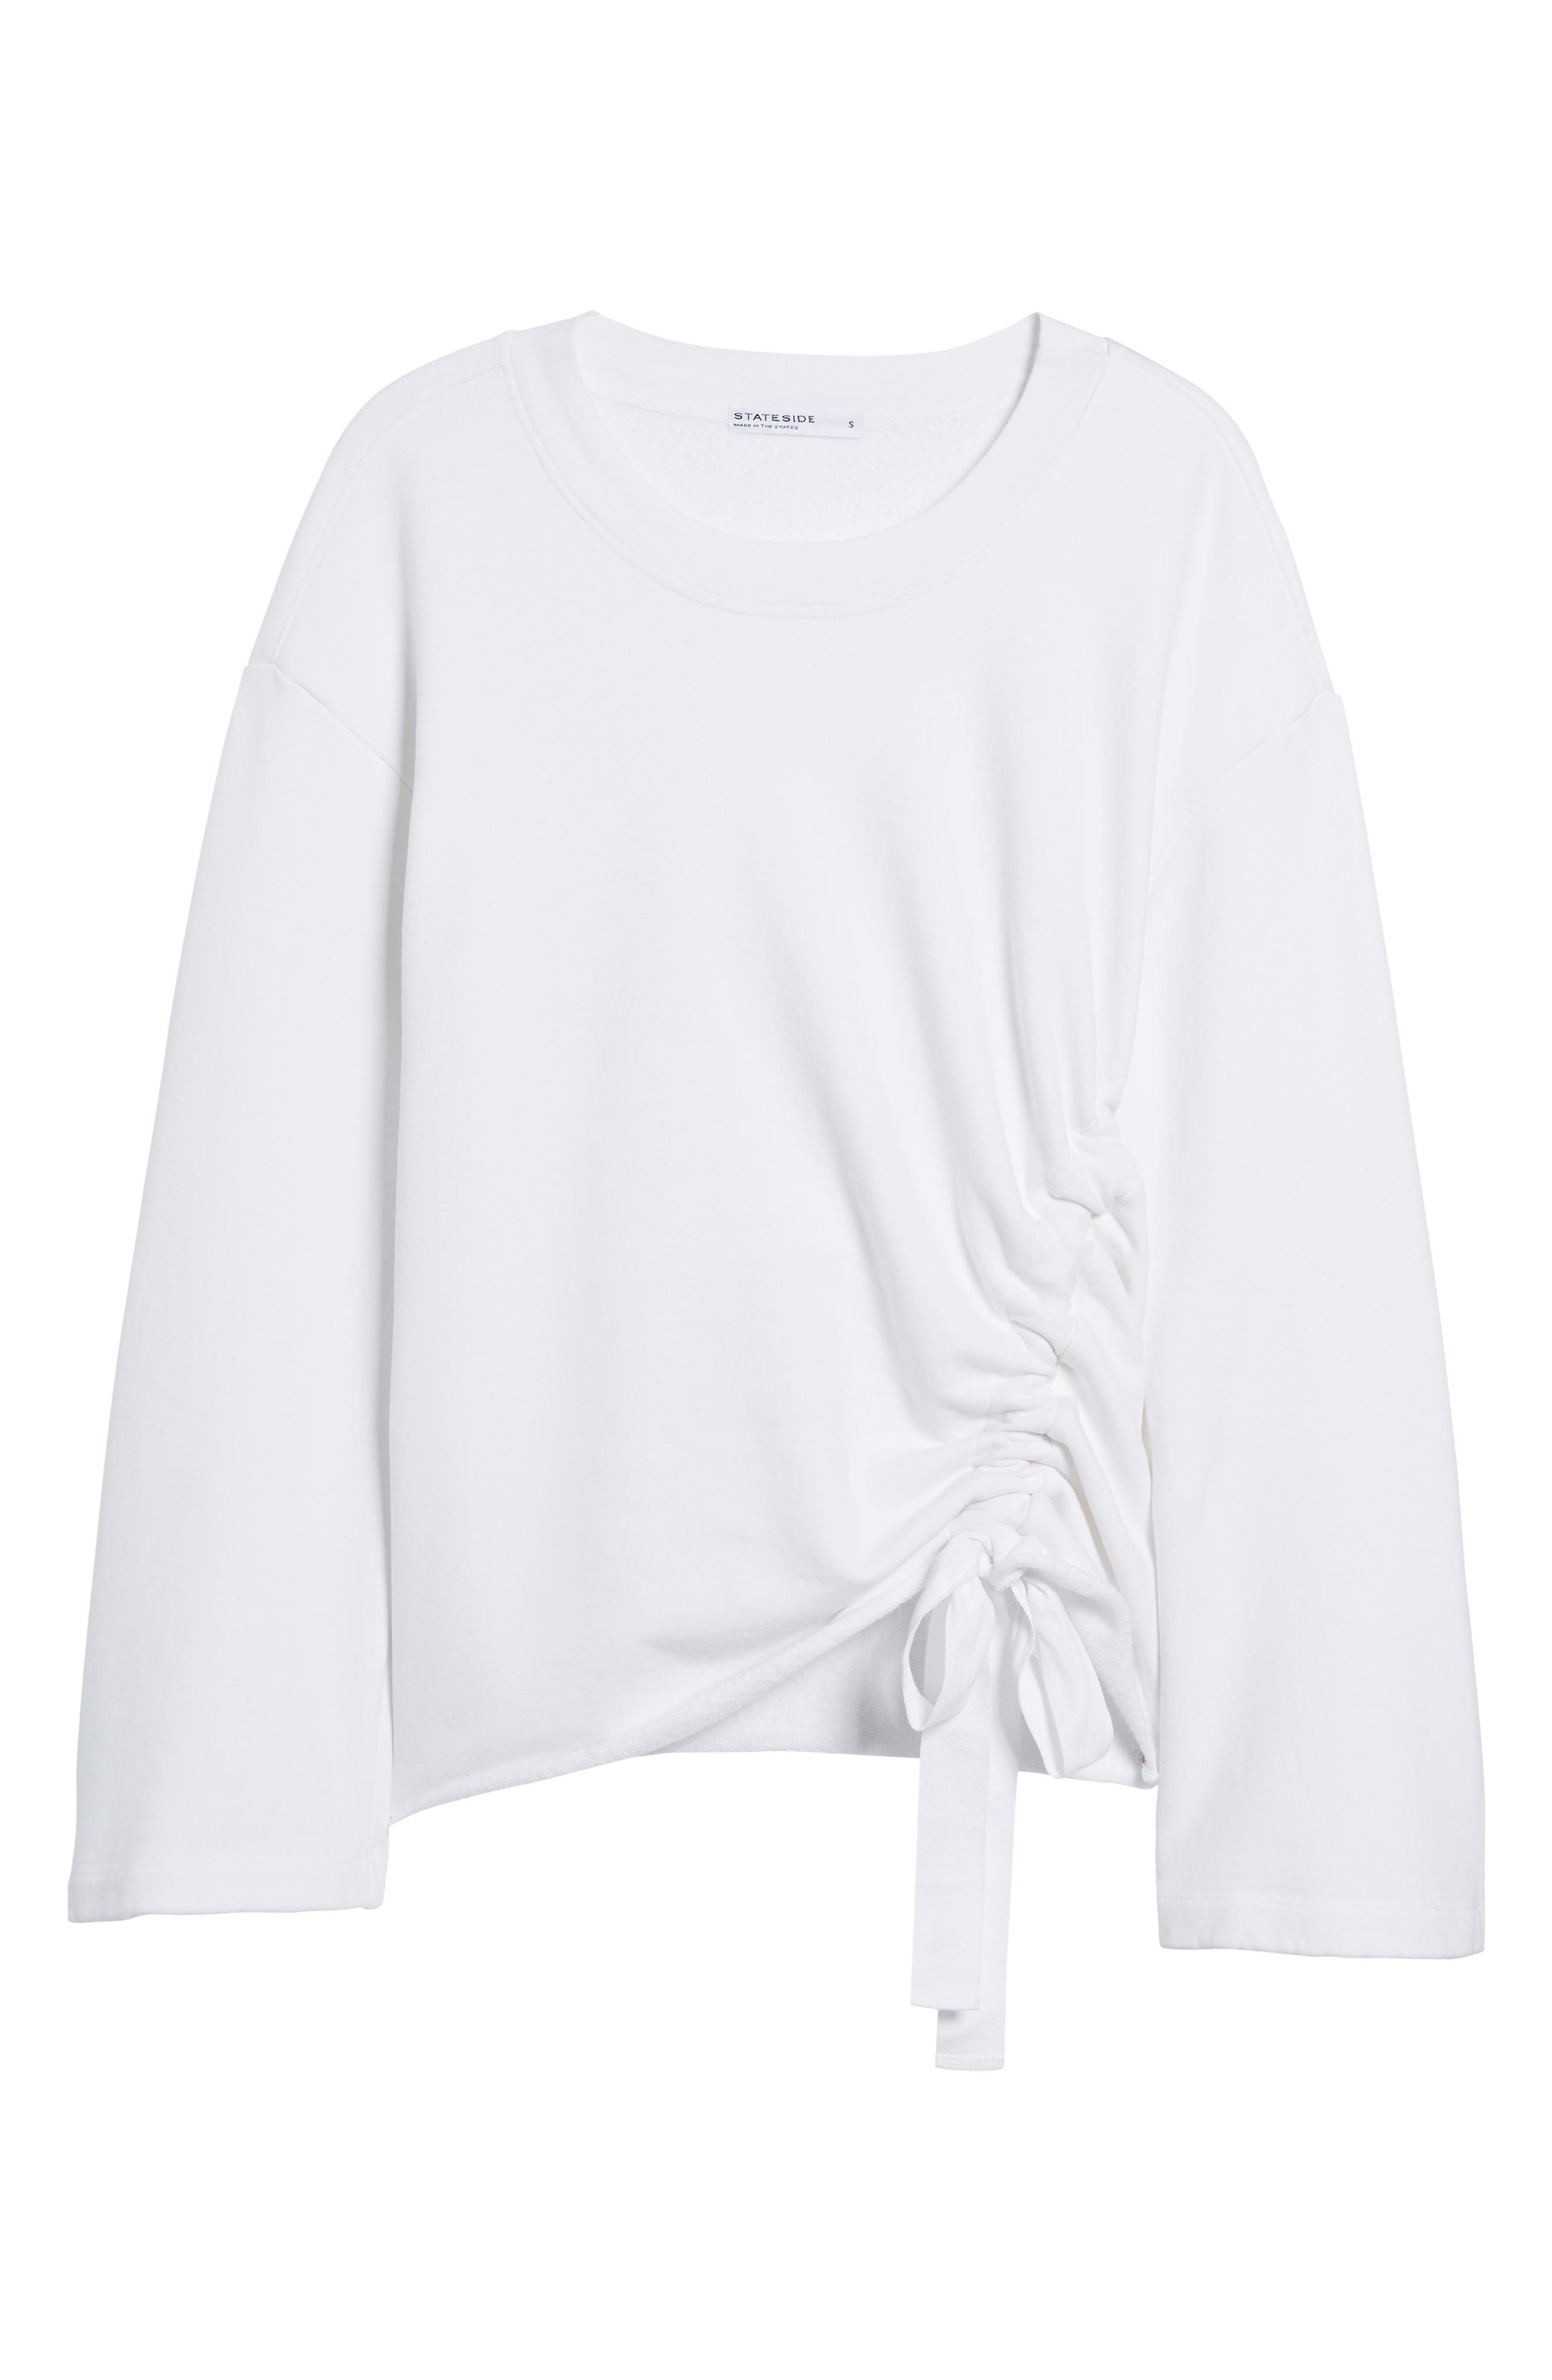 Gathered French Terry Sweatshirt,                             Alternate thumbnail 7, color,                             White